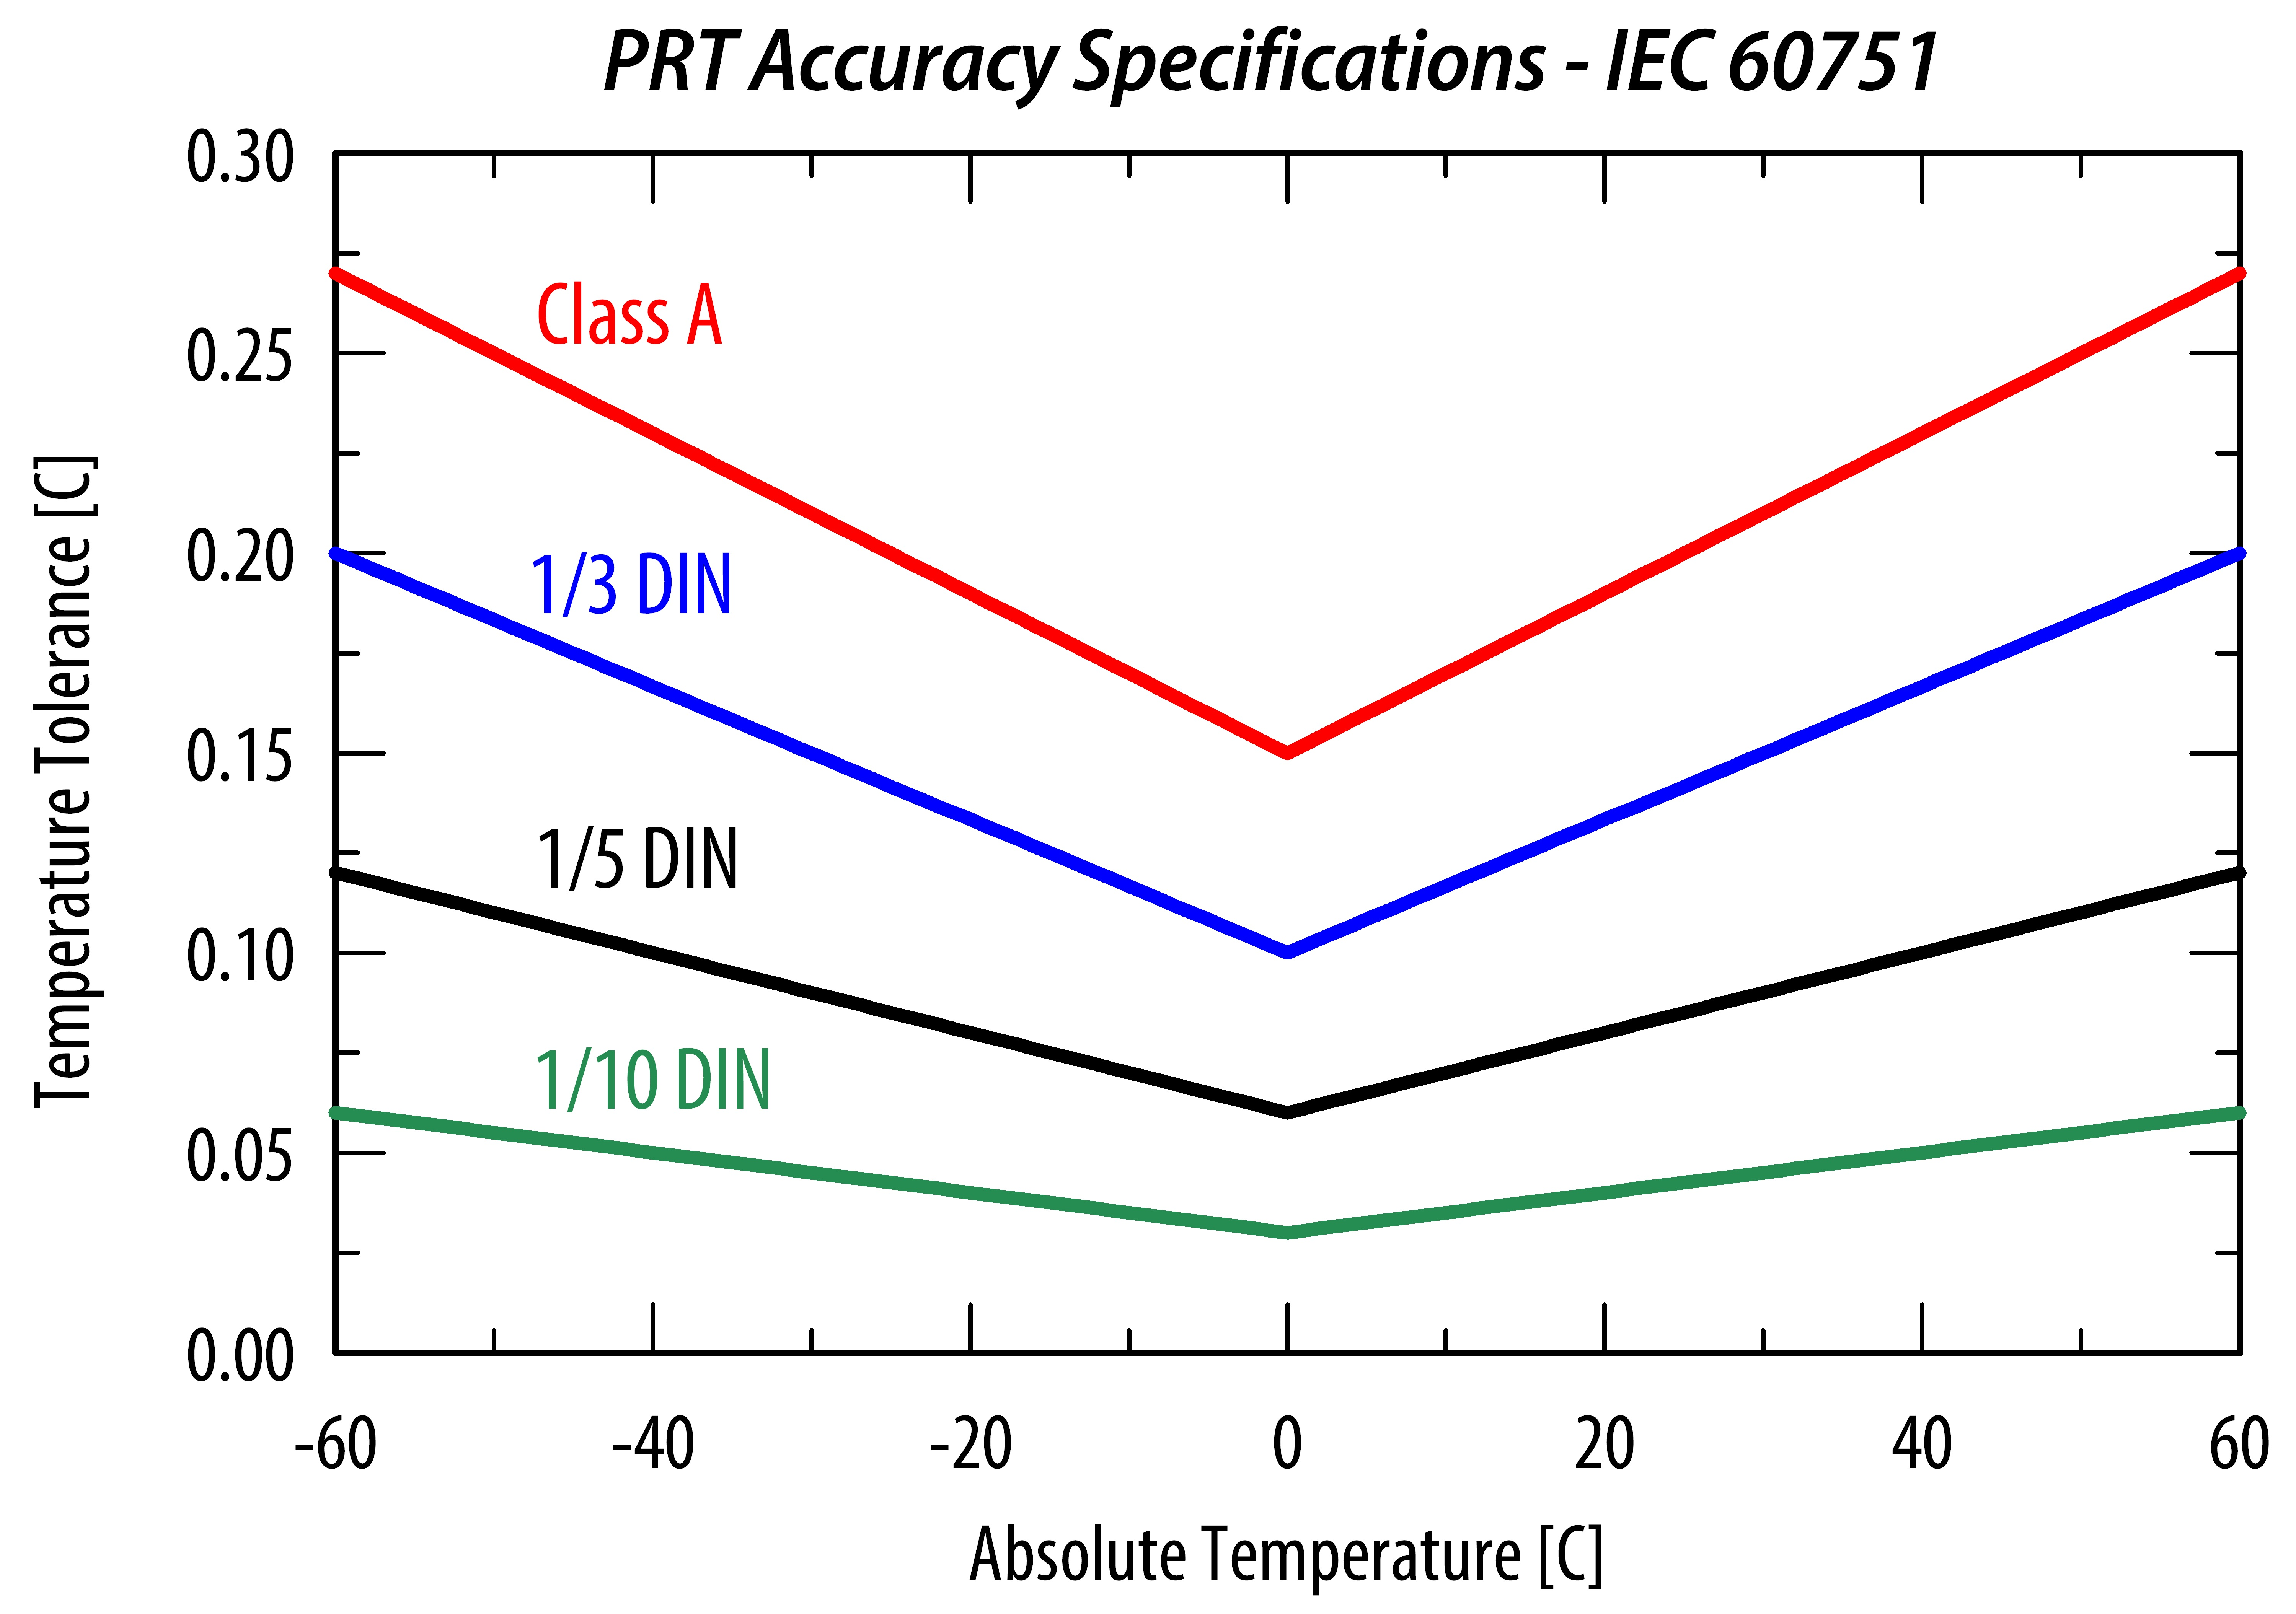 prt-accuracy-specifications-per-iec-60751